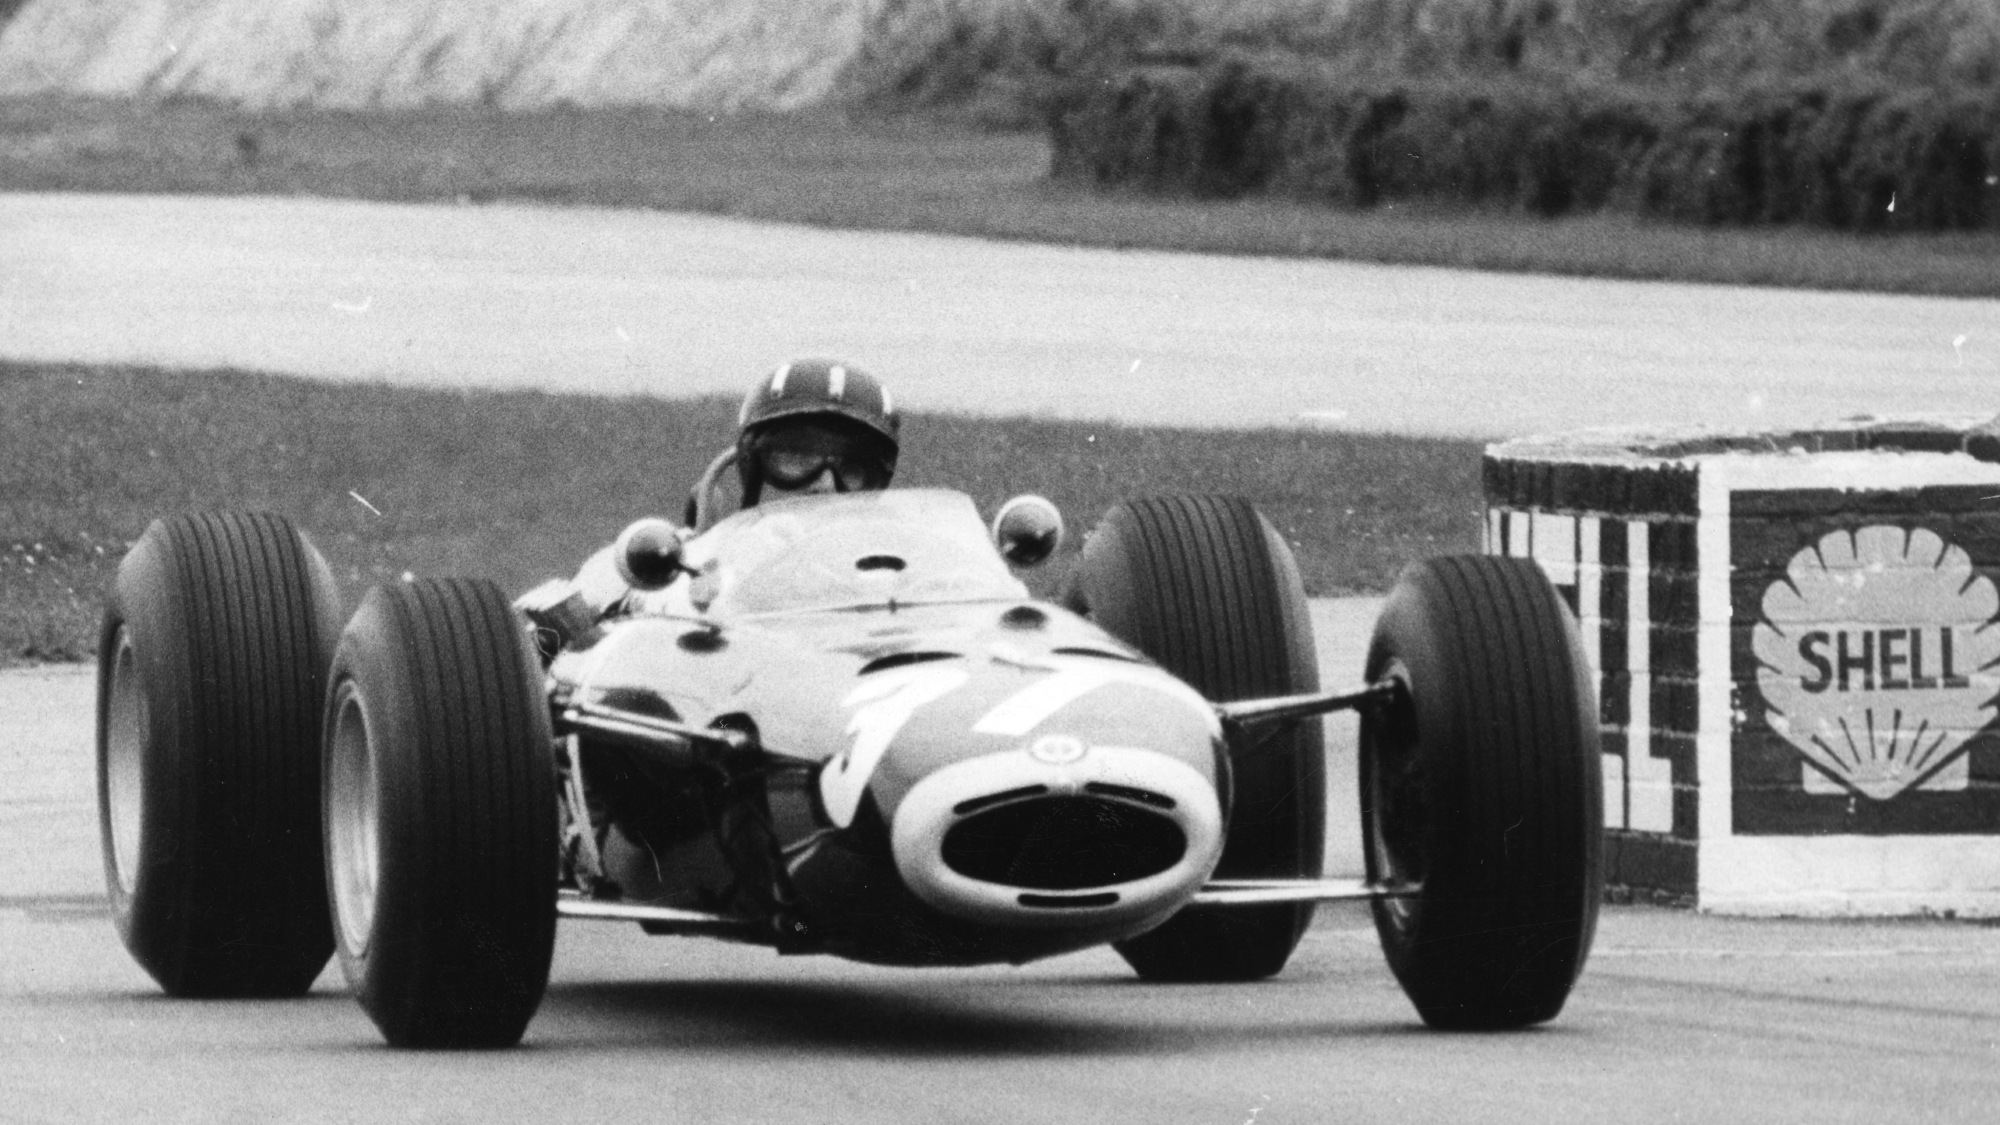 Graham Hill at Goodwood chicane